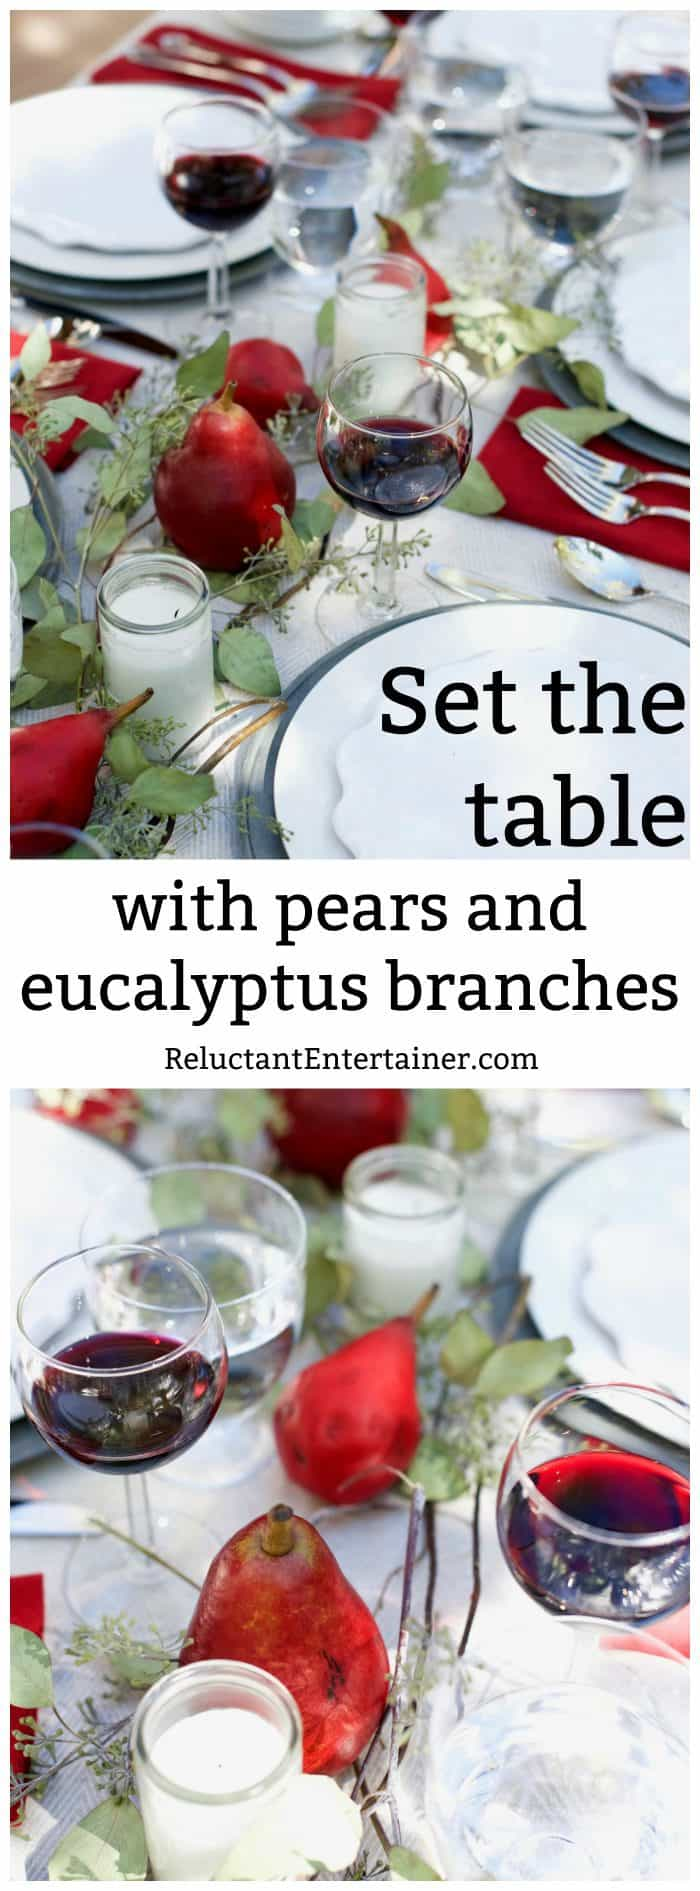 Set the table with pears and eucalyptus branches